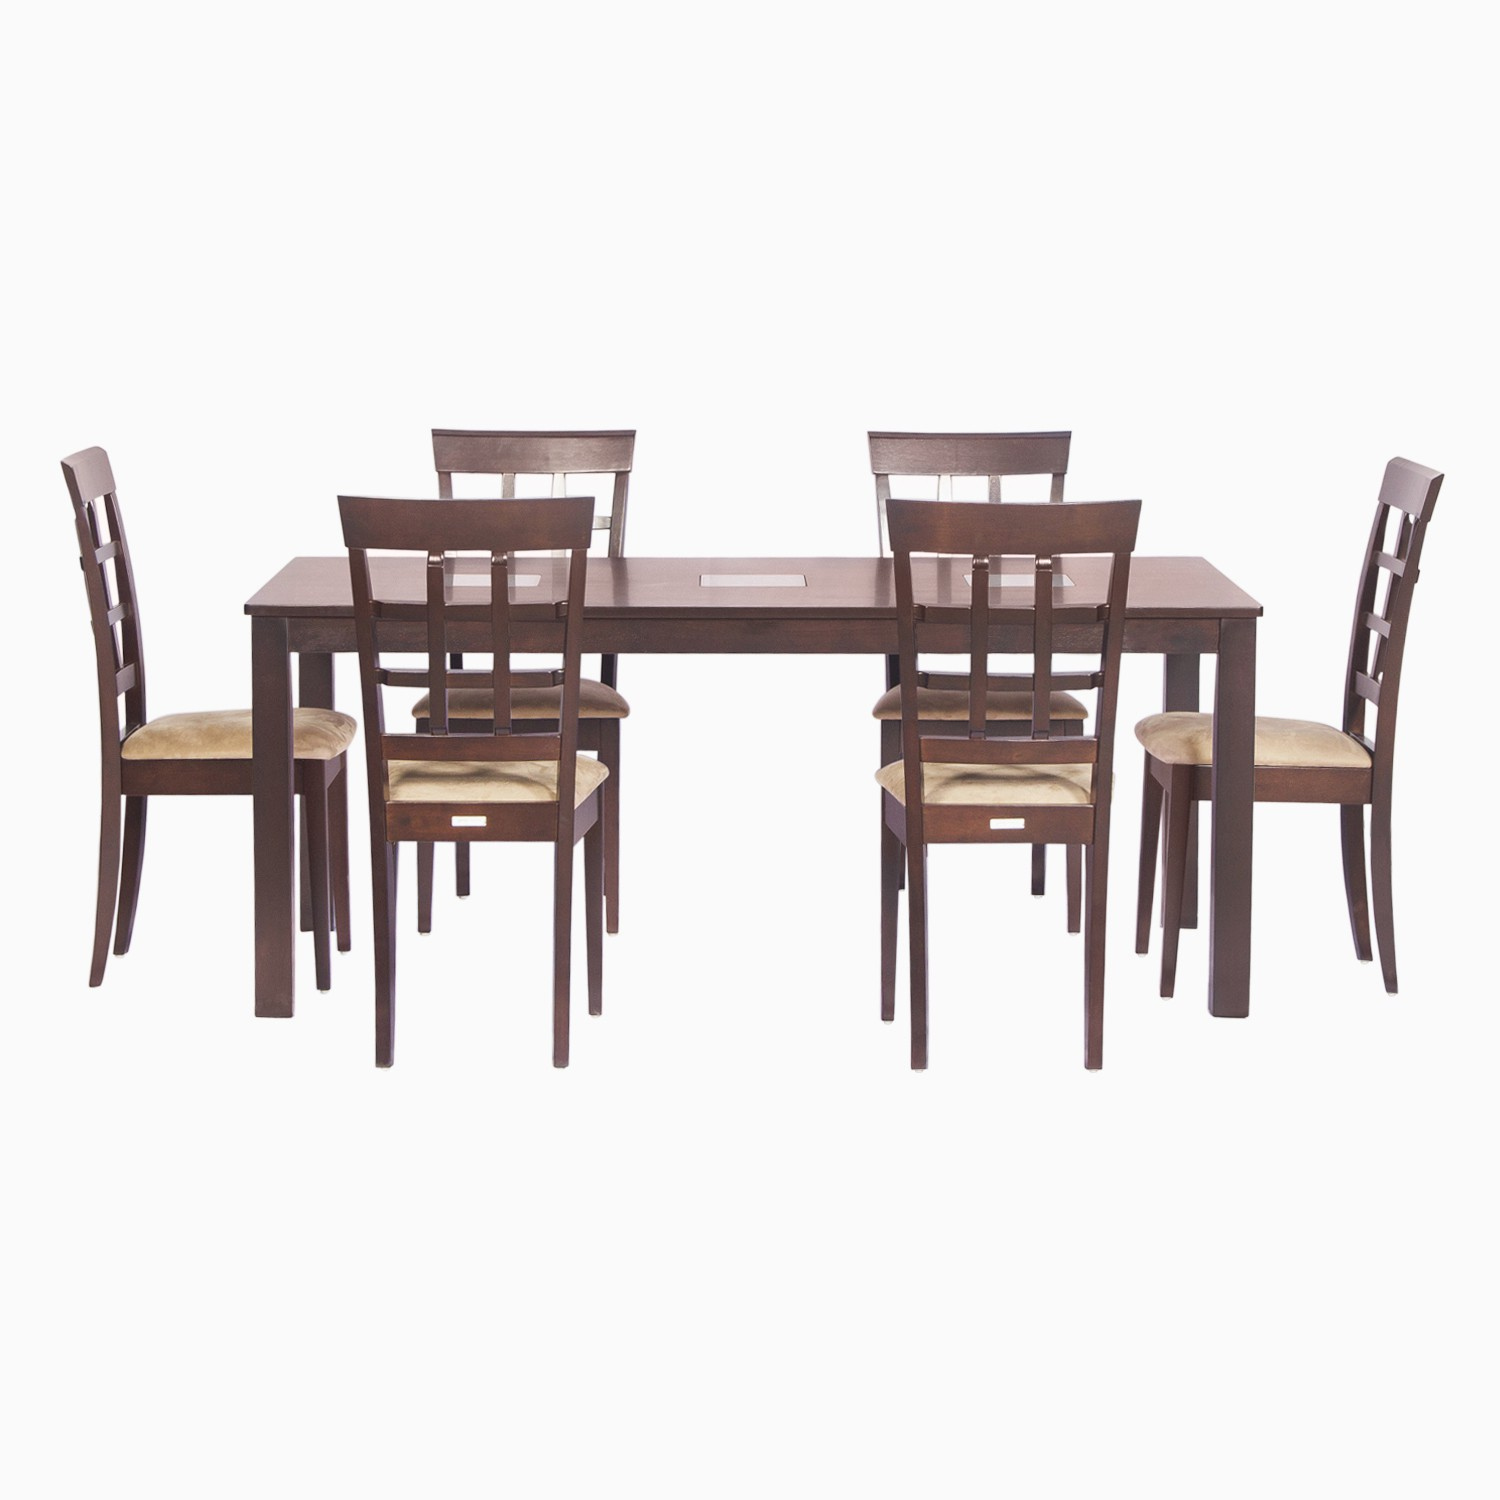 Godrej Interio Leo & Lisa Dining Set Solid Wood Dining Set